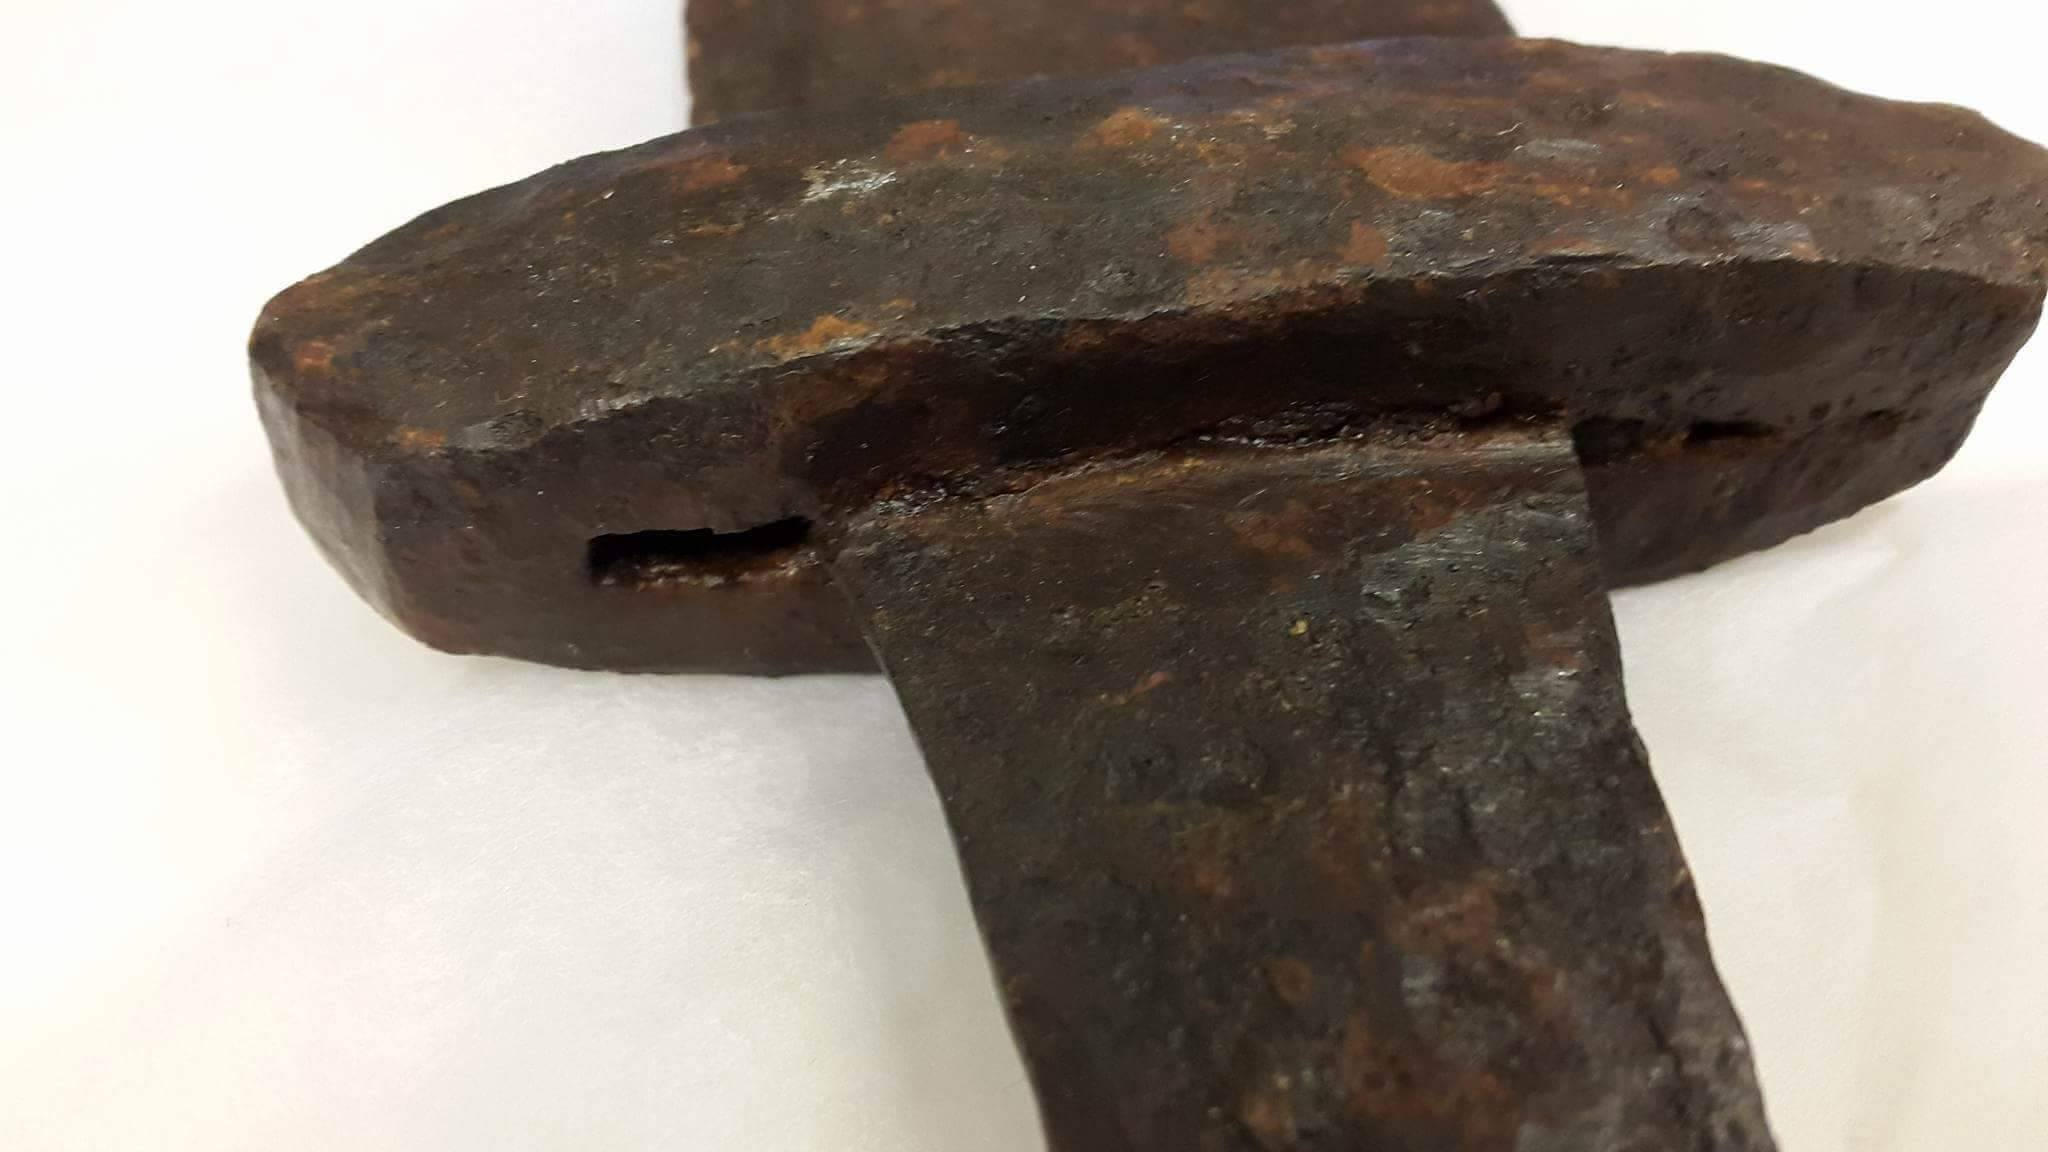 Close-up of the poorly fitted lower guard seen from the end of pommel, showing the gaps between the tang and the lower guard. Photo: Courtesy of Tord Bergelin,